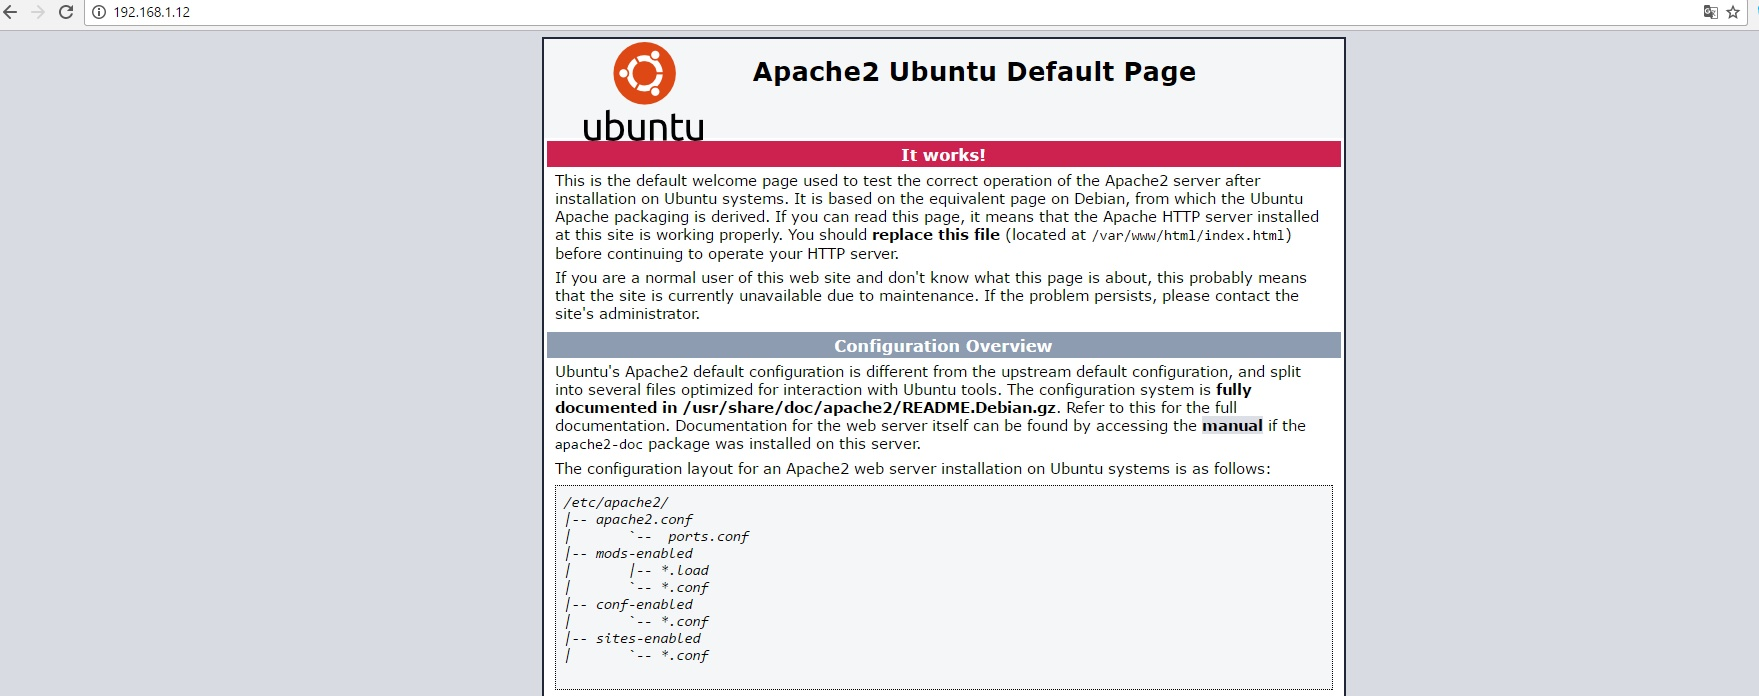 Figure 3 - Apache test